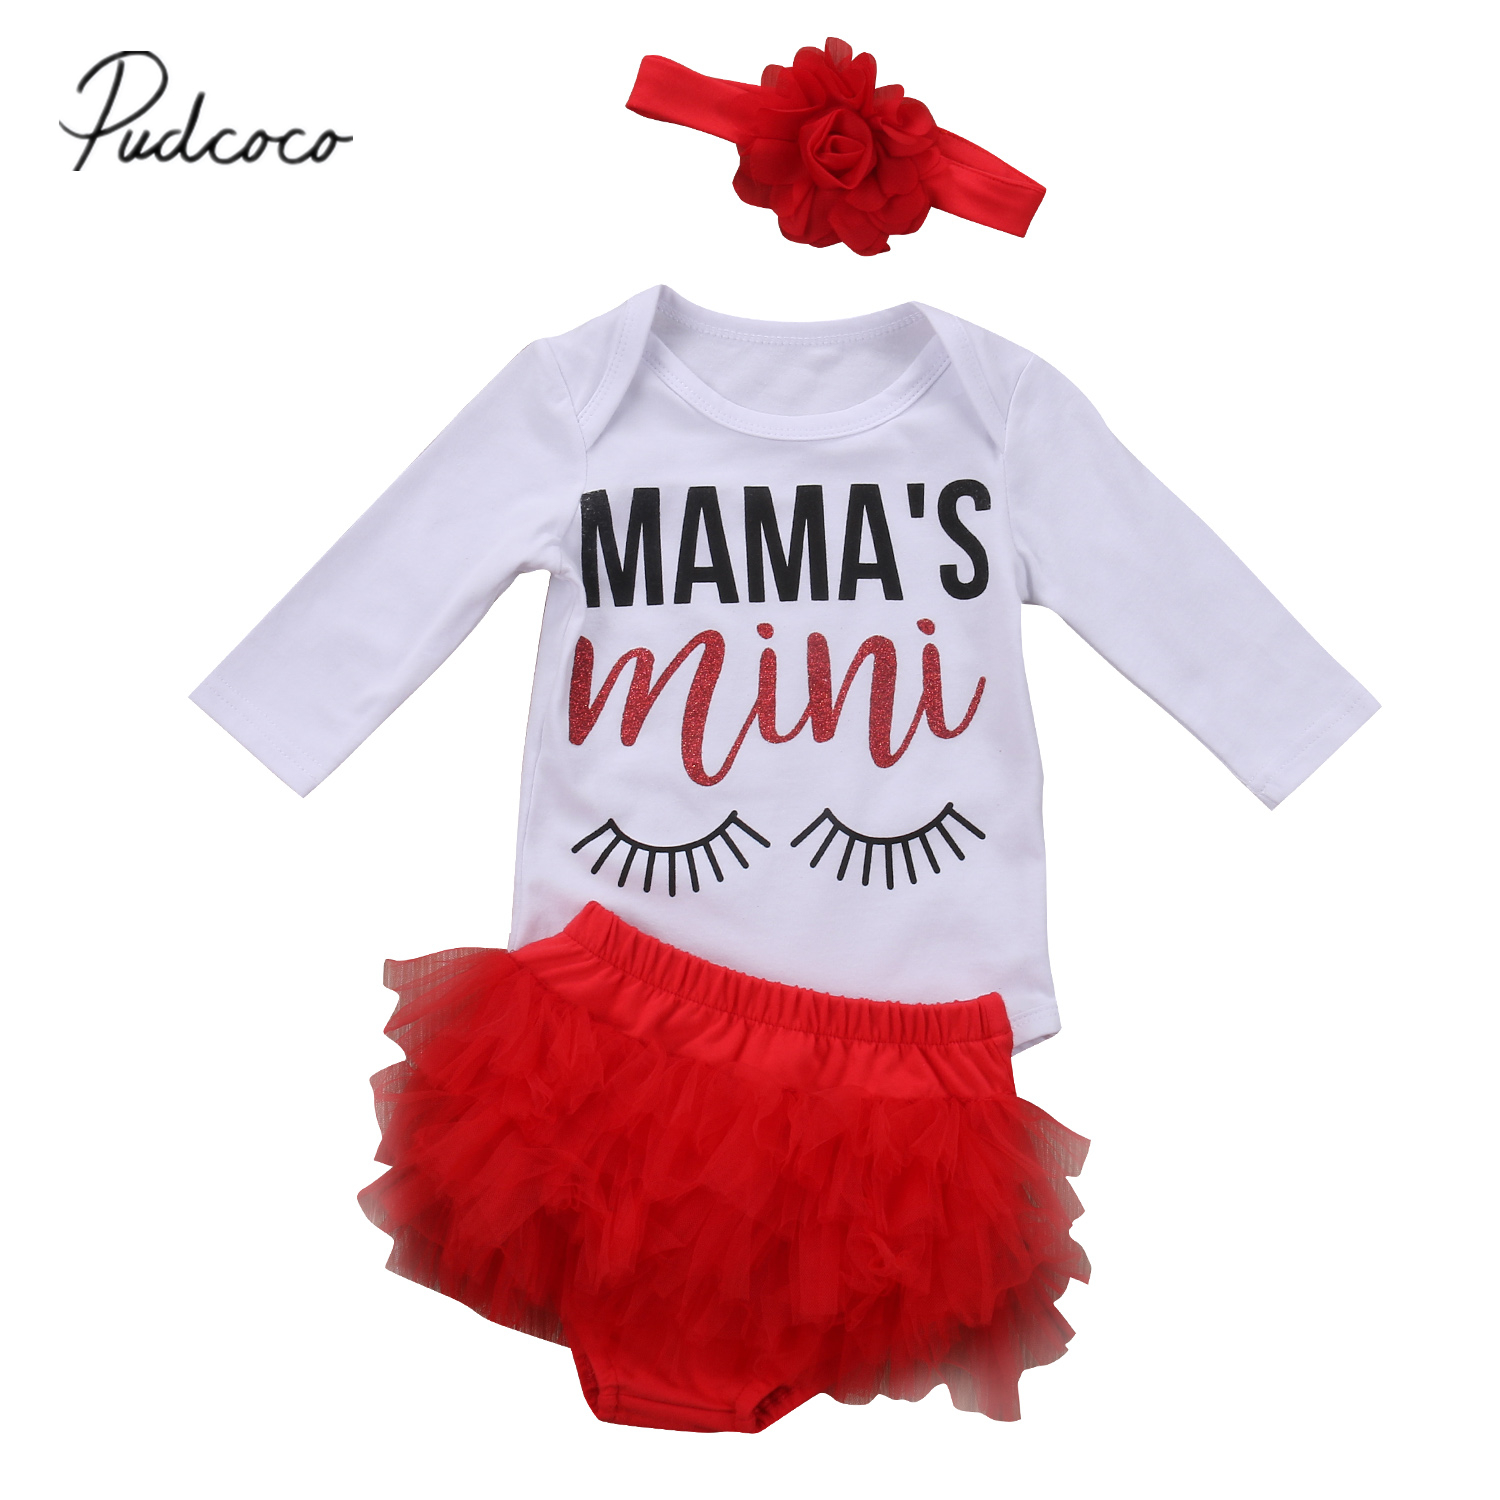 Pudcoco 2017 Newborn Baby Girls Long Sleeves Mini Rompers Tutu Lace